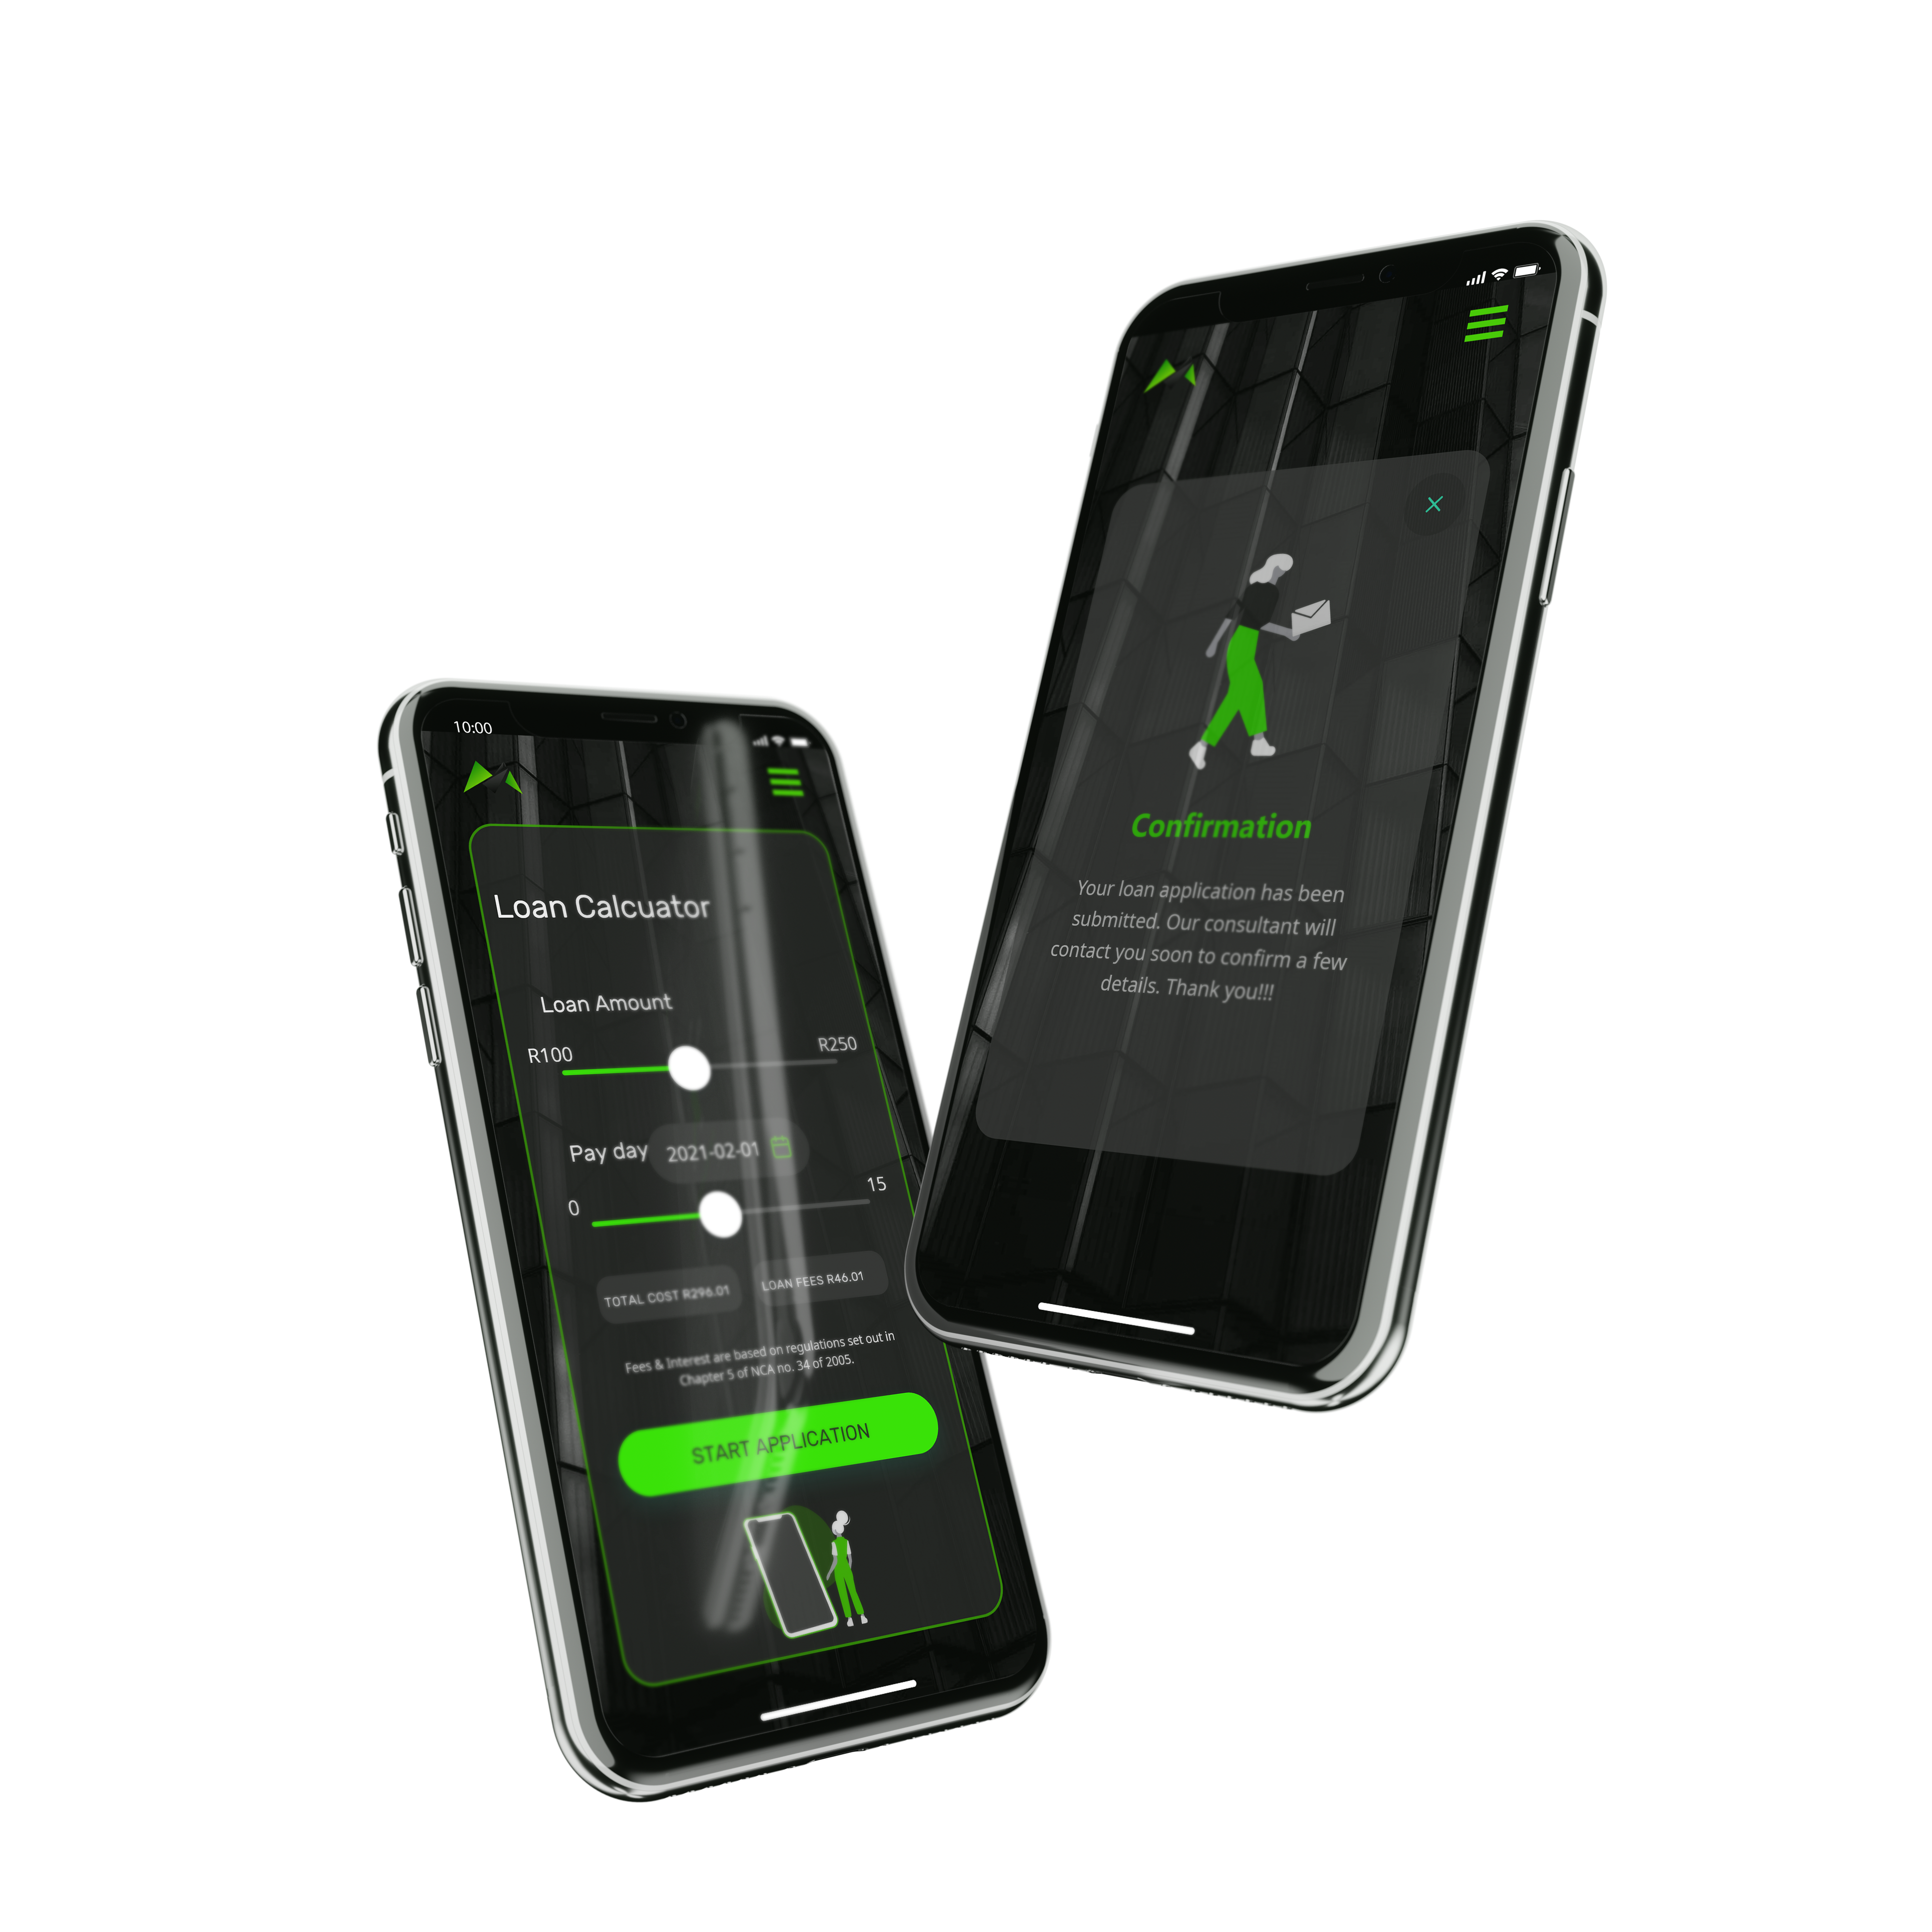 iPhone X mockup hover both